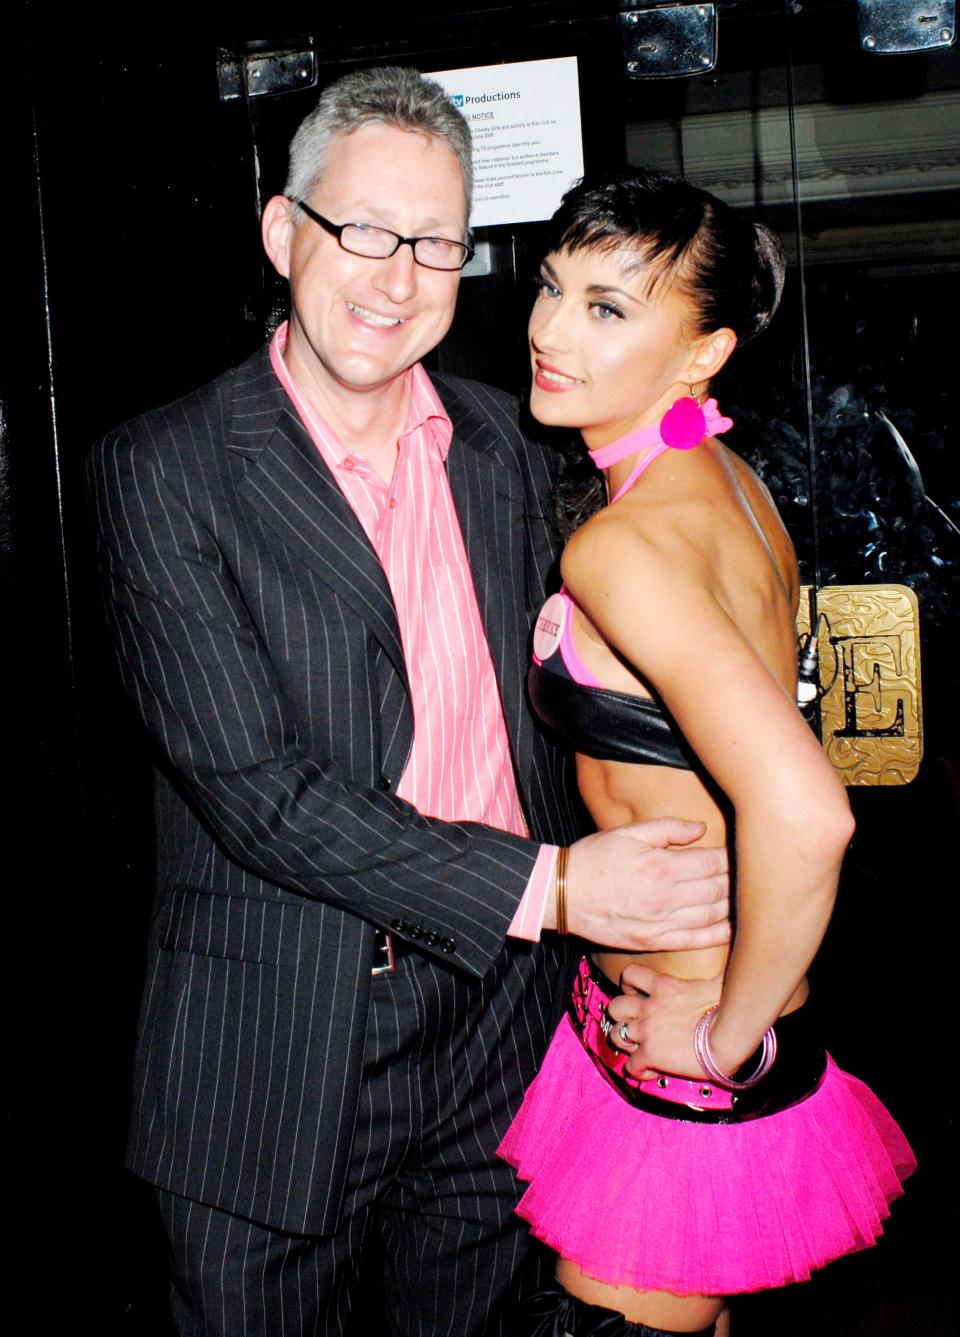 Opik previously dated Gabriela Irimia of The Cheek Girls